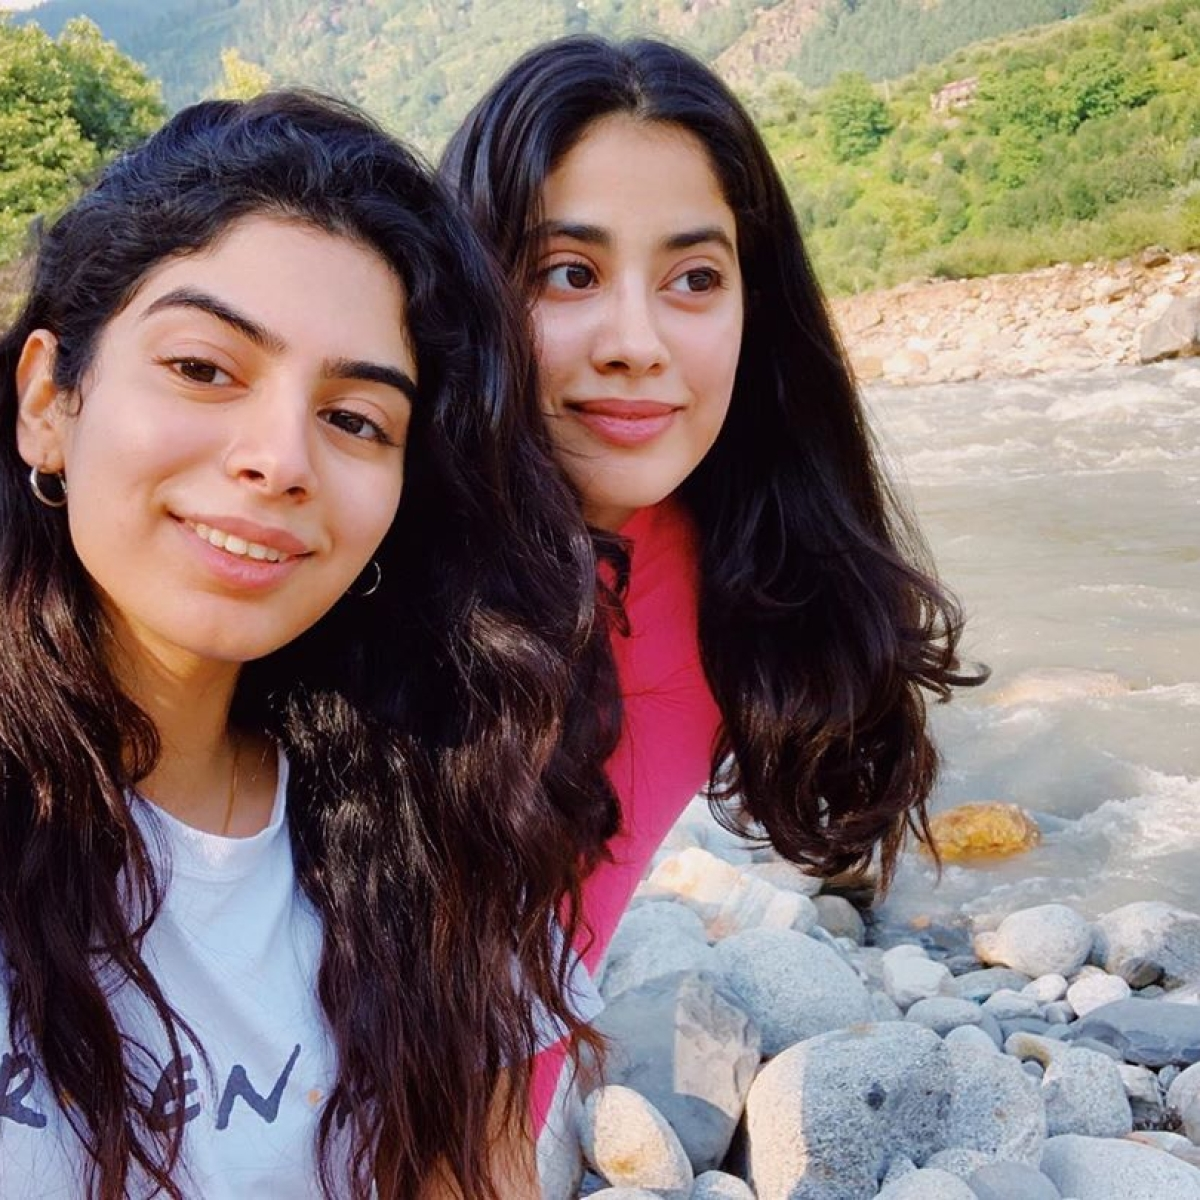 First to marry, have kids: Janhvi and Khushi Kapoor take the 'who is the most likely' challenge